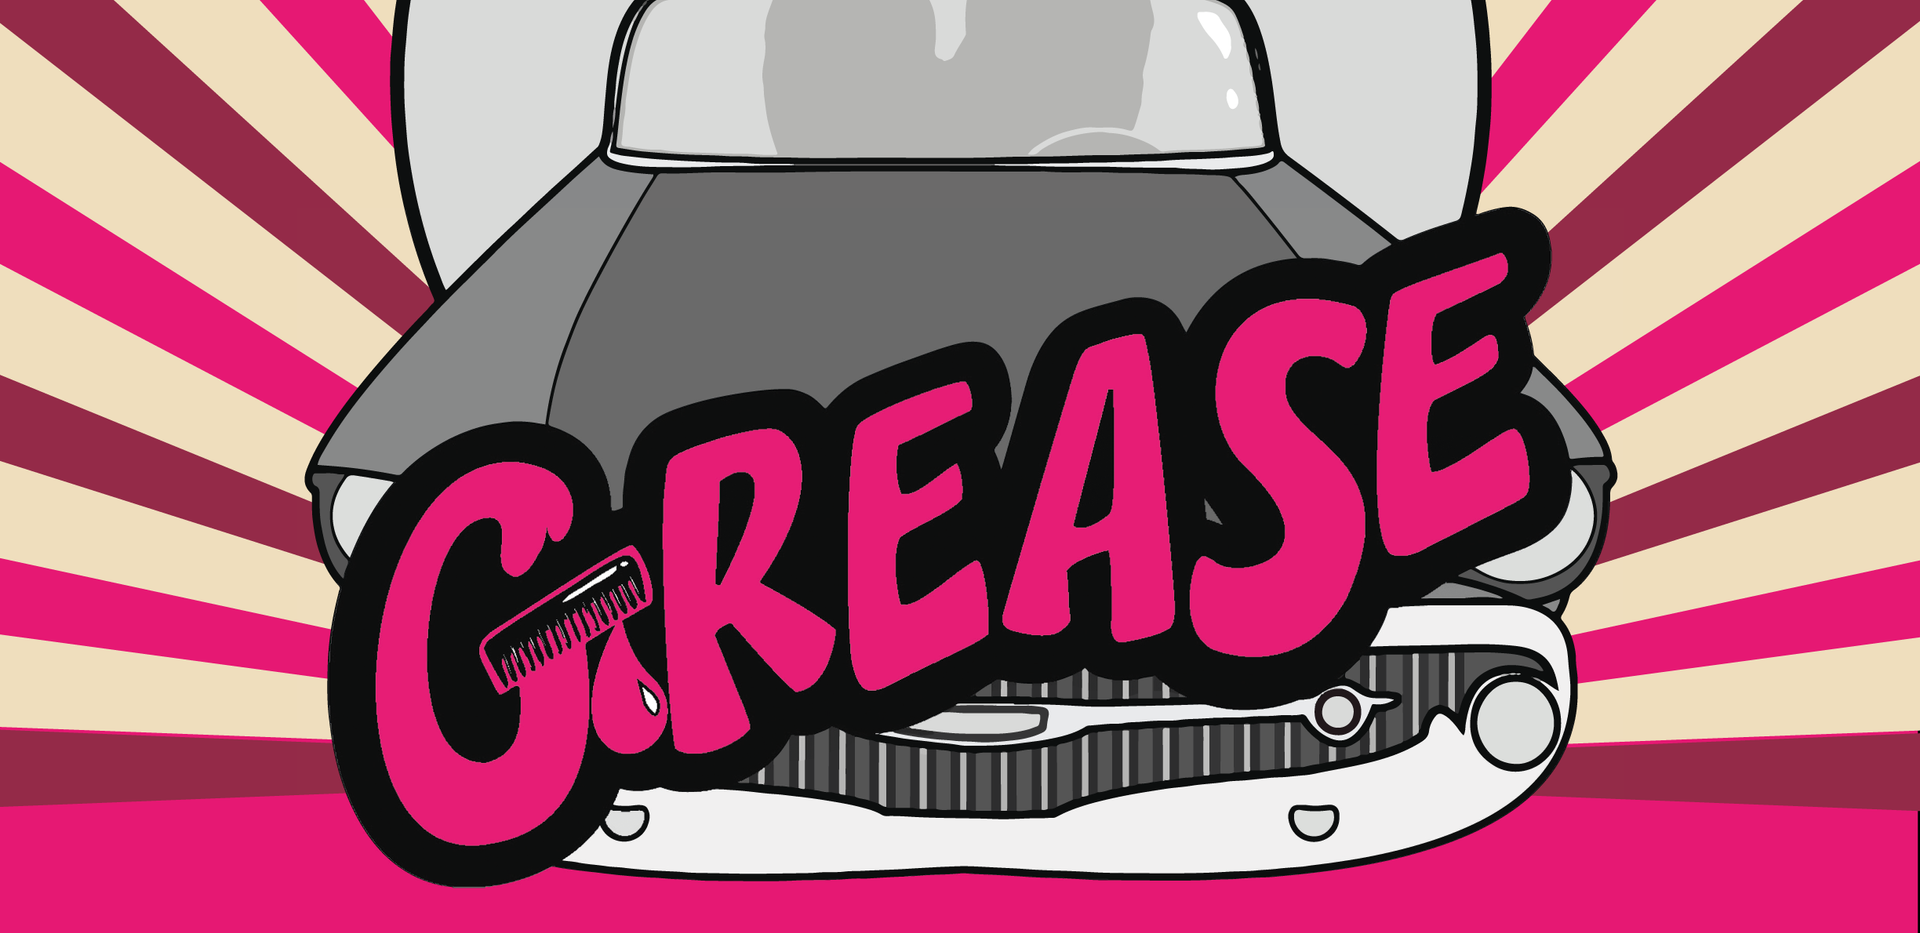 Grease-couverture.png